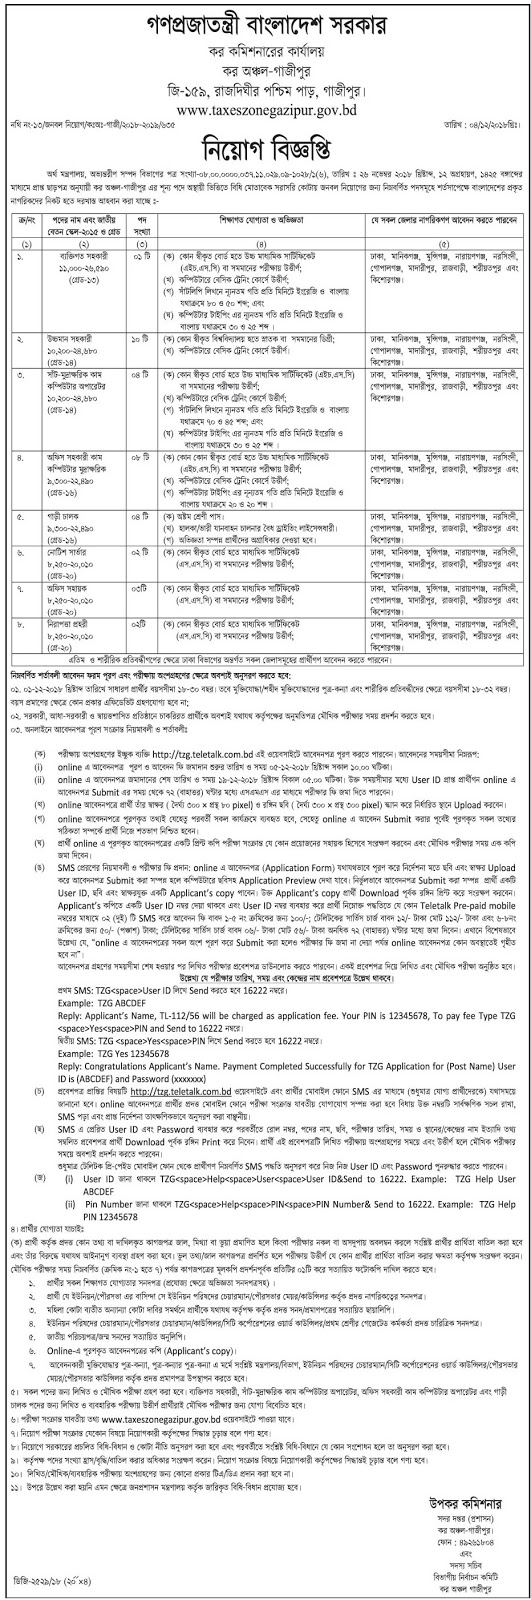 Commissioner of Taxes, Taxes Zone- Gazipur Job Circular 2018